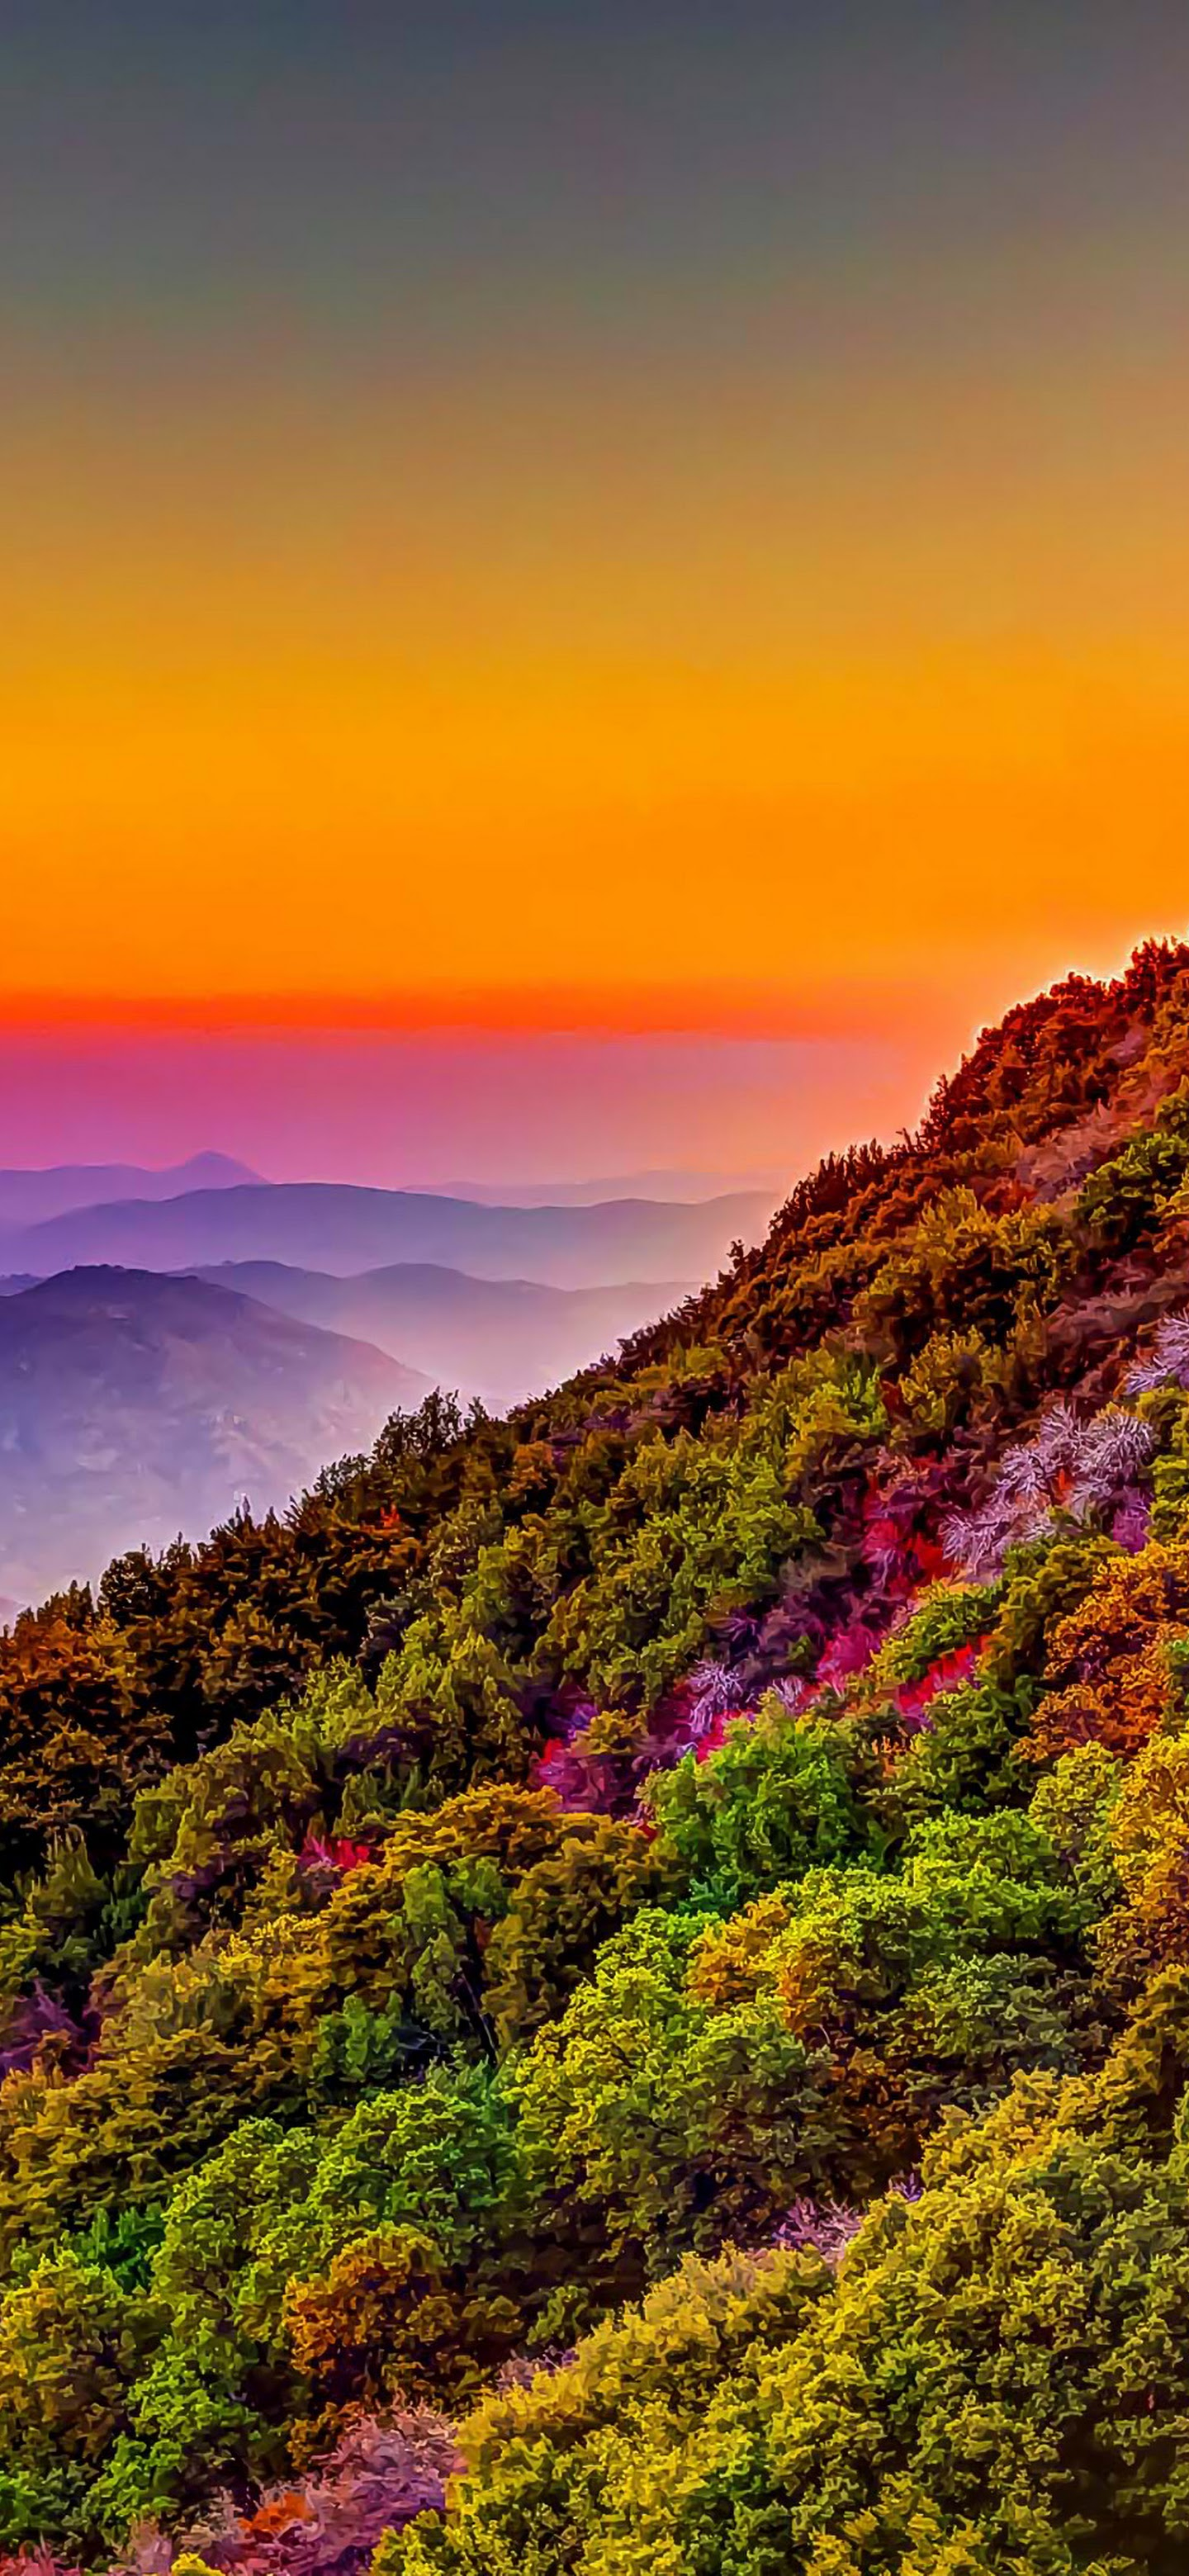 Mountain Colorful Forest Nature Sunset Scenery 4k Wallpaper 161